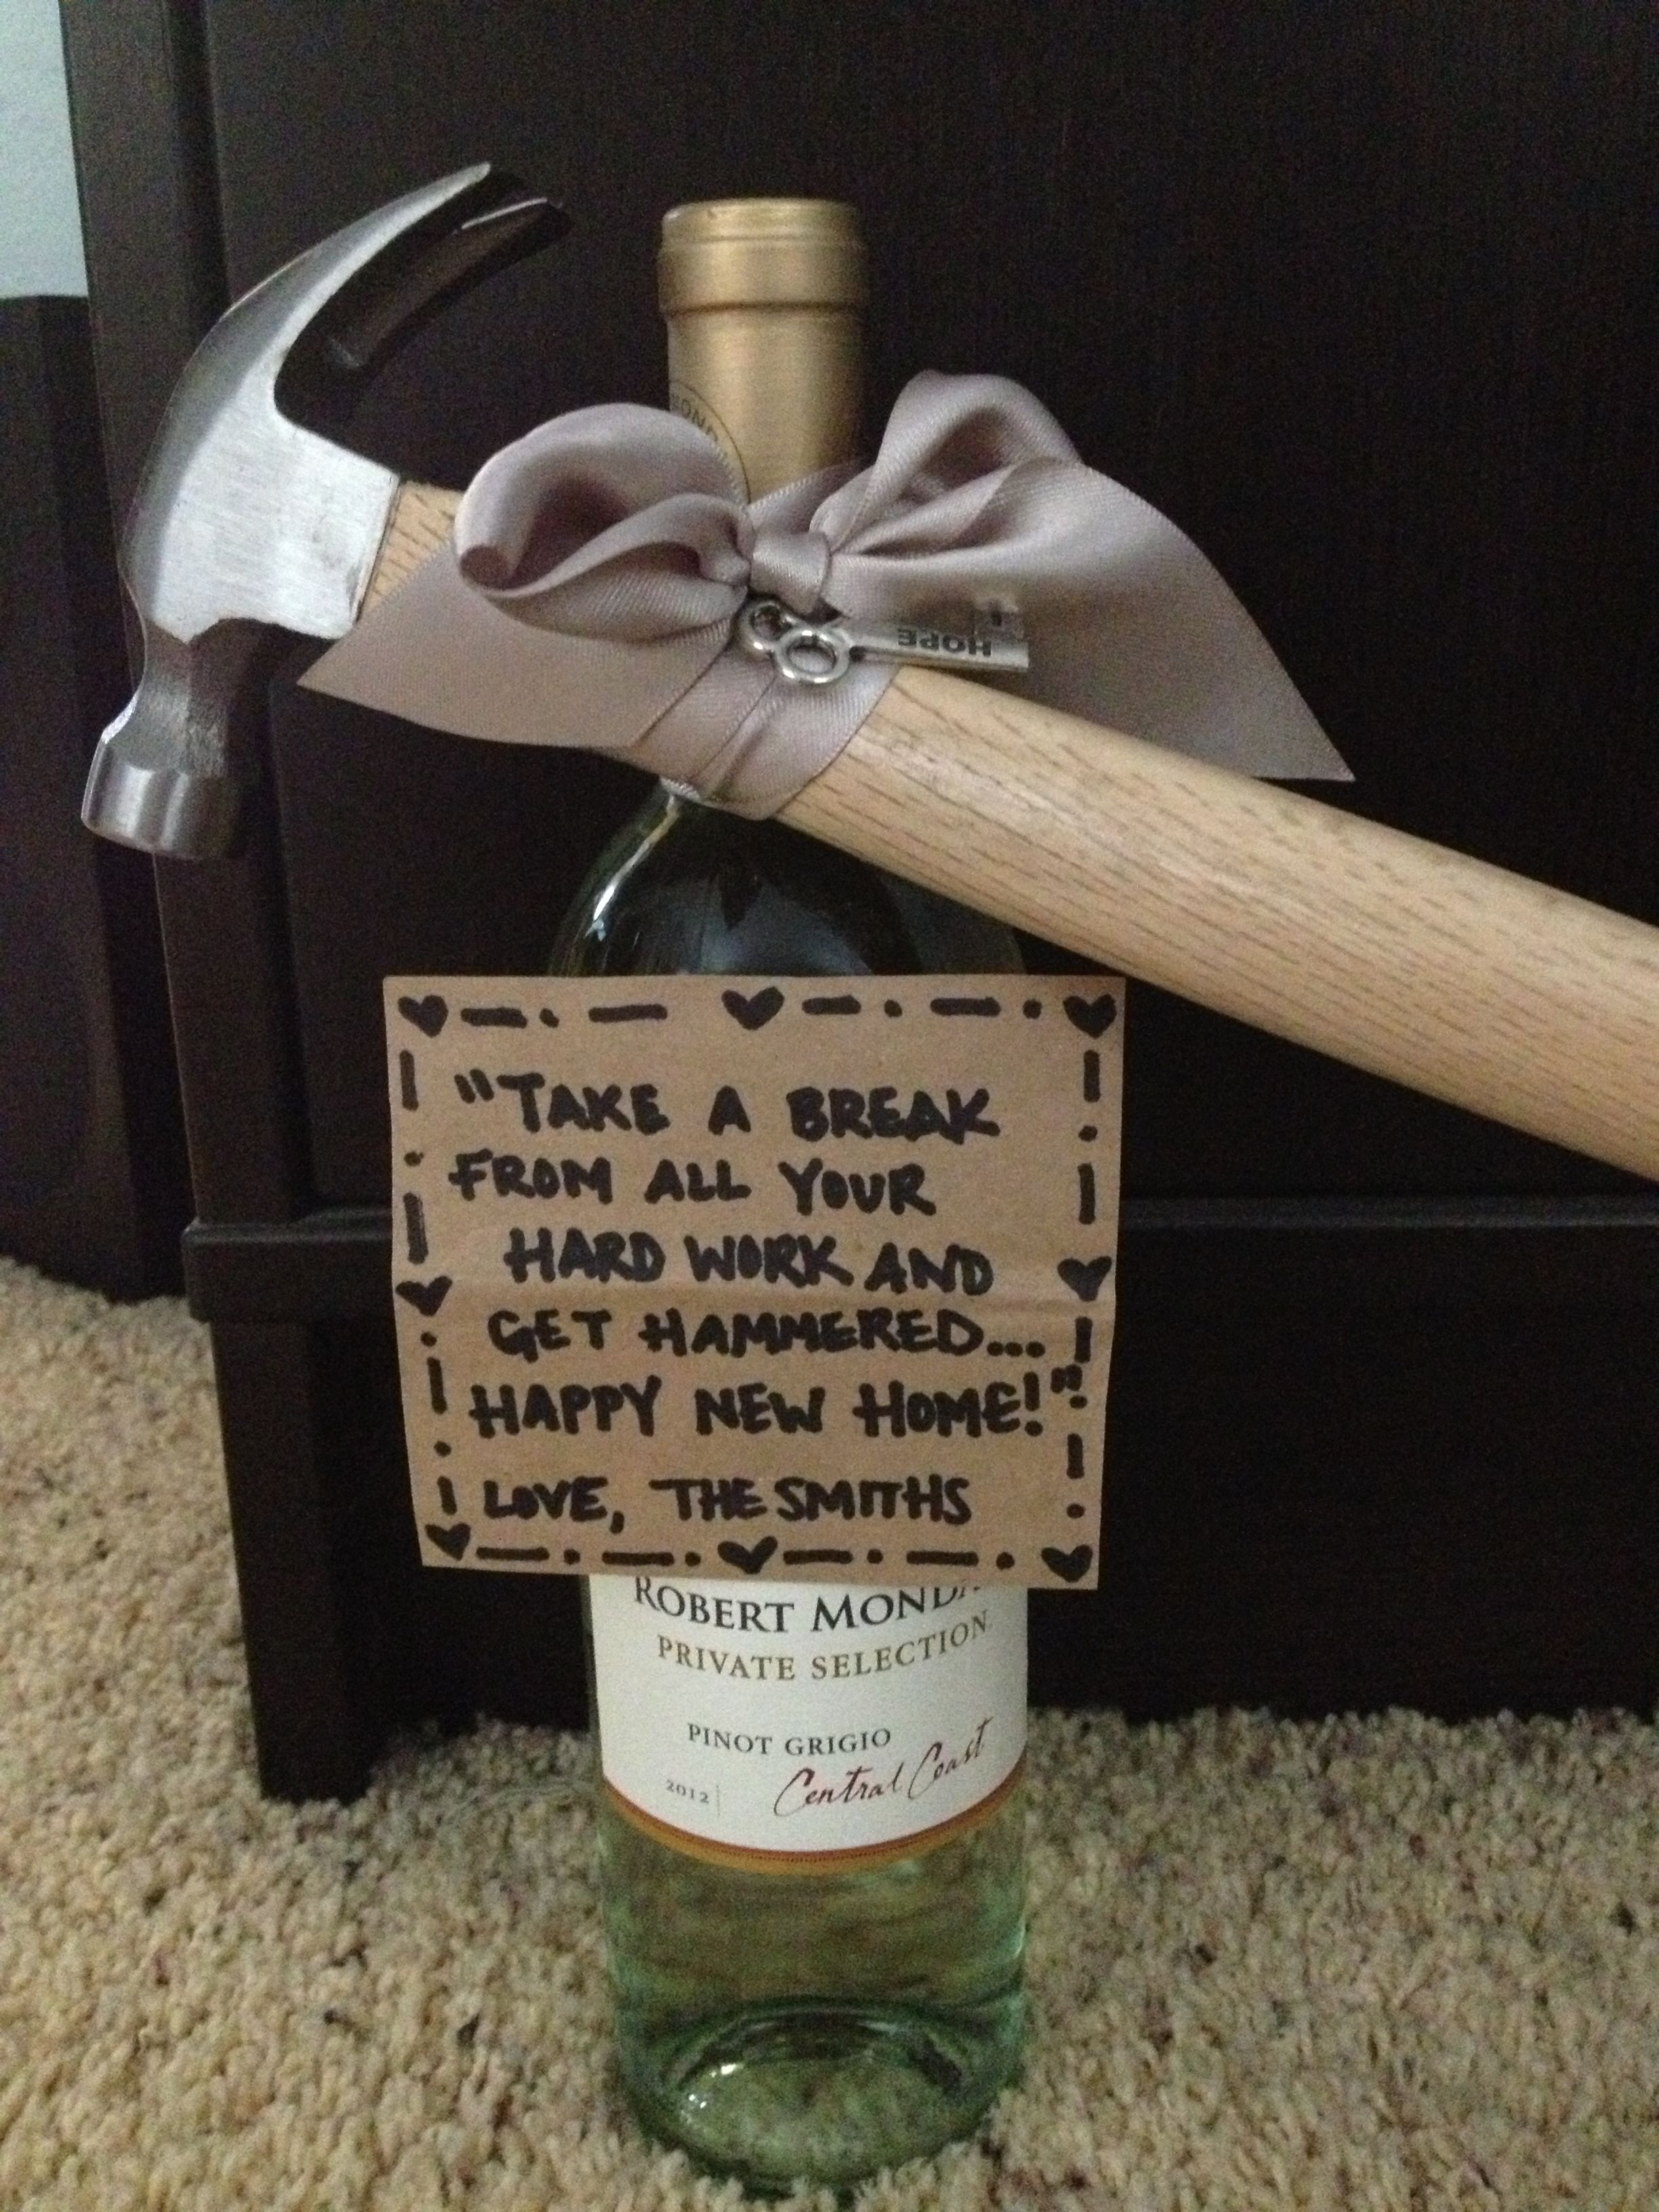 What To Buy For Housewarming Party Housewarming Gift Why Give Wine When You Can Give Wine And A